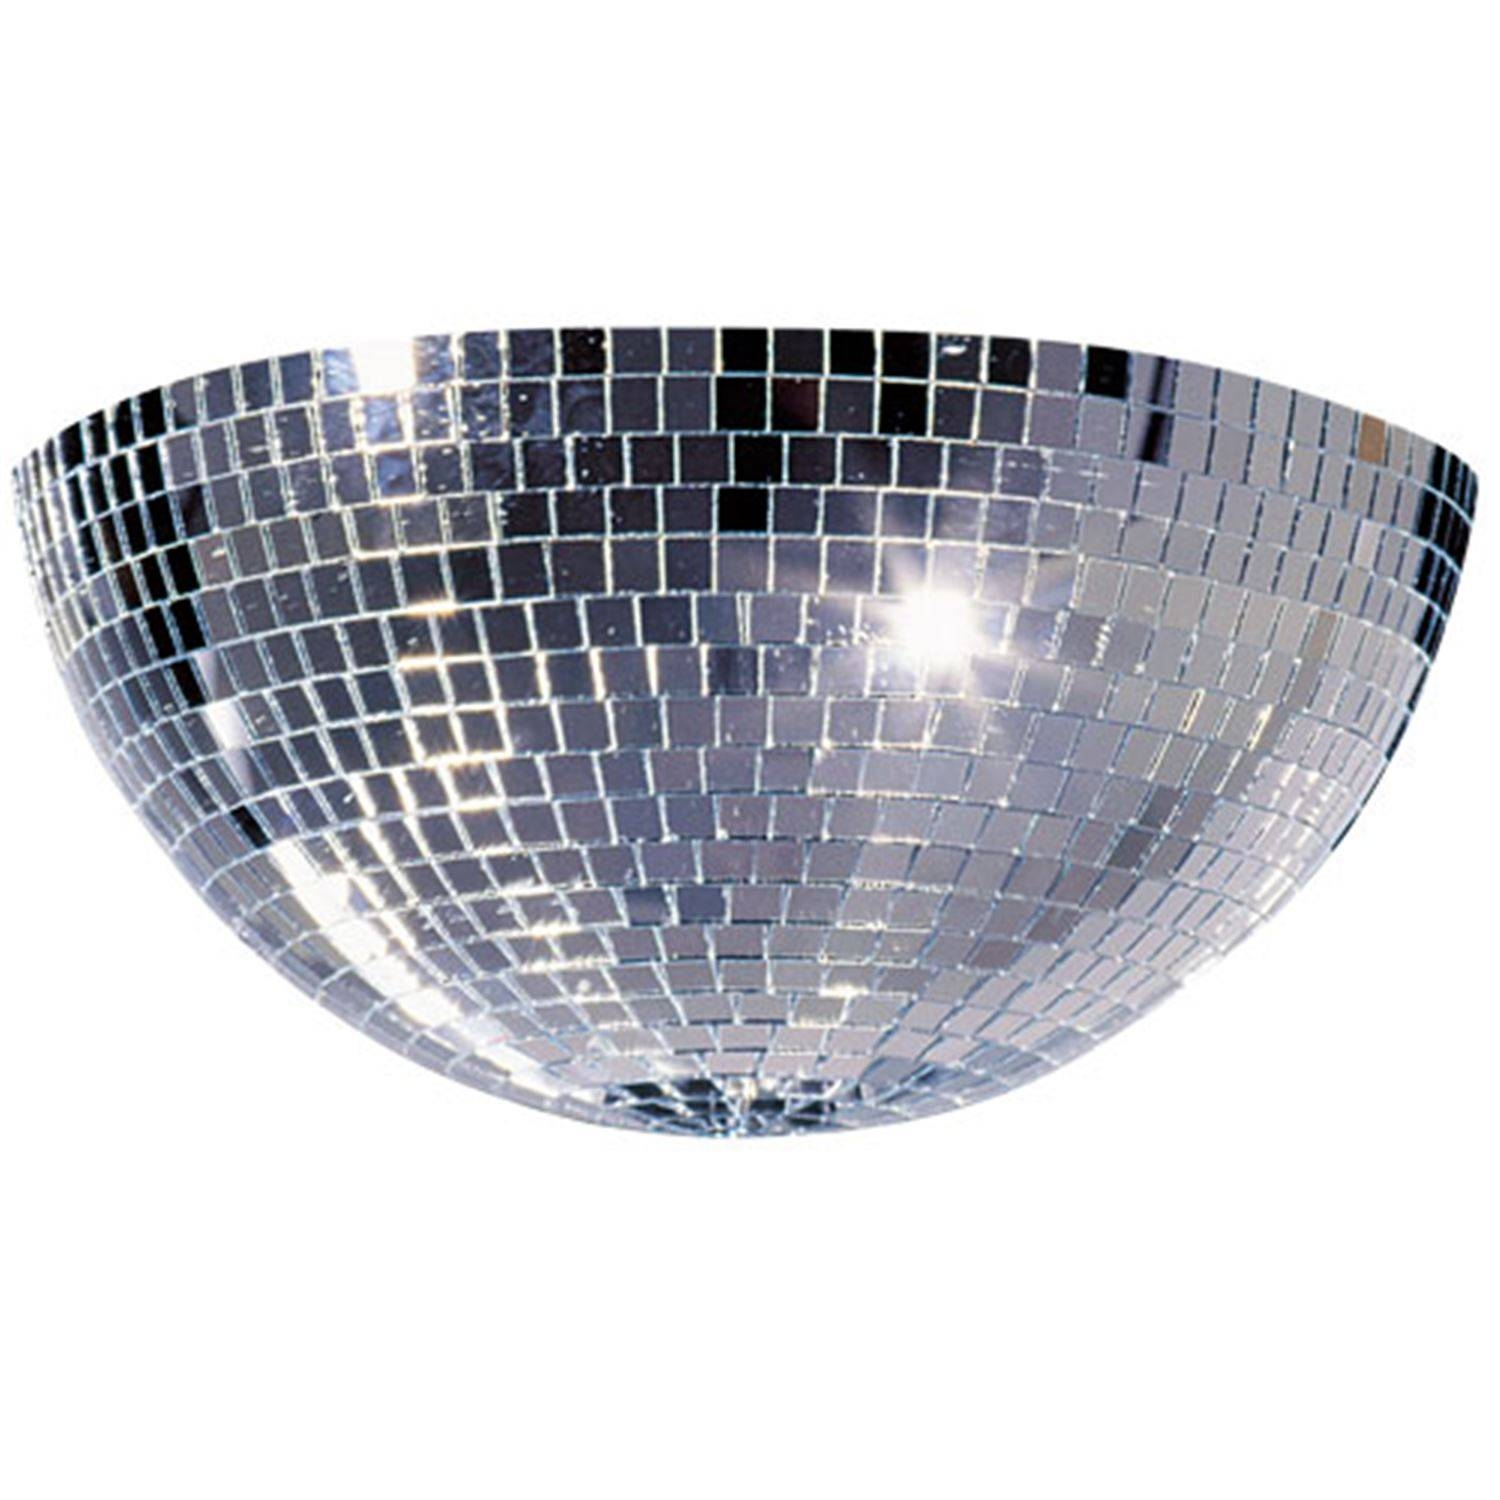 Mirror Ball 20 Inch Half Round + | Pssl with Disco Ball Ceiling Lights Fixtures (Image 10 of 15)